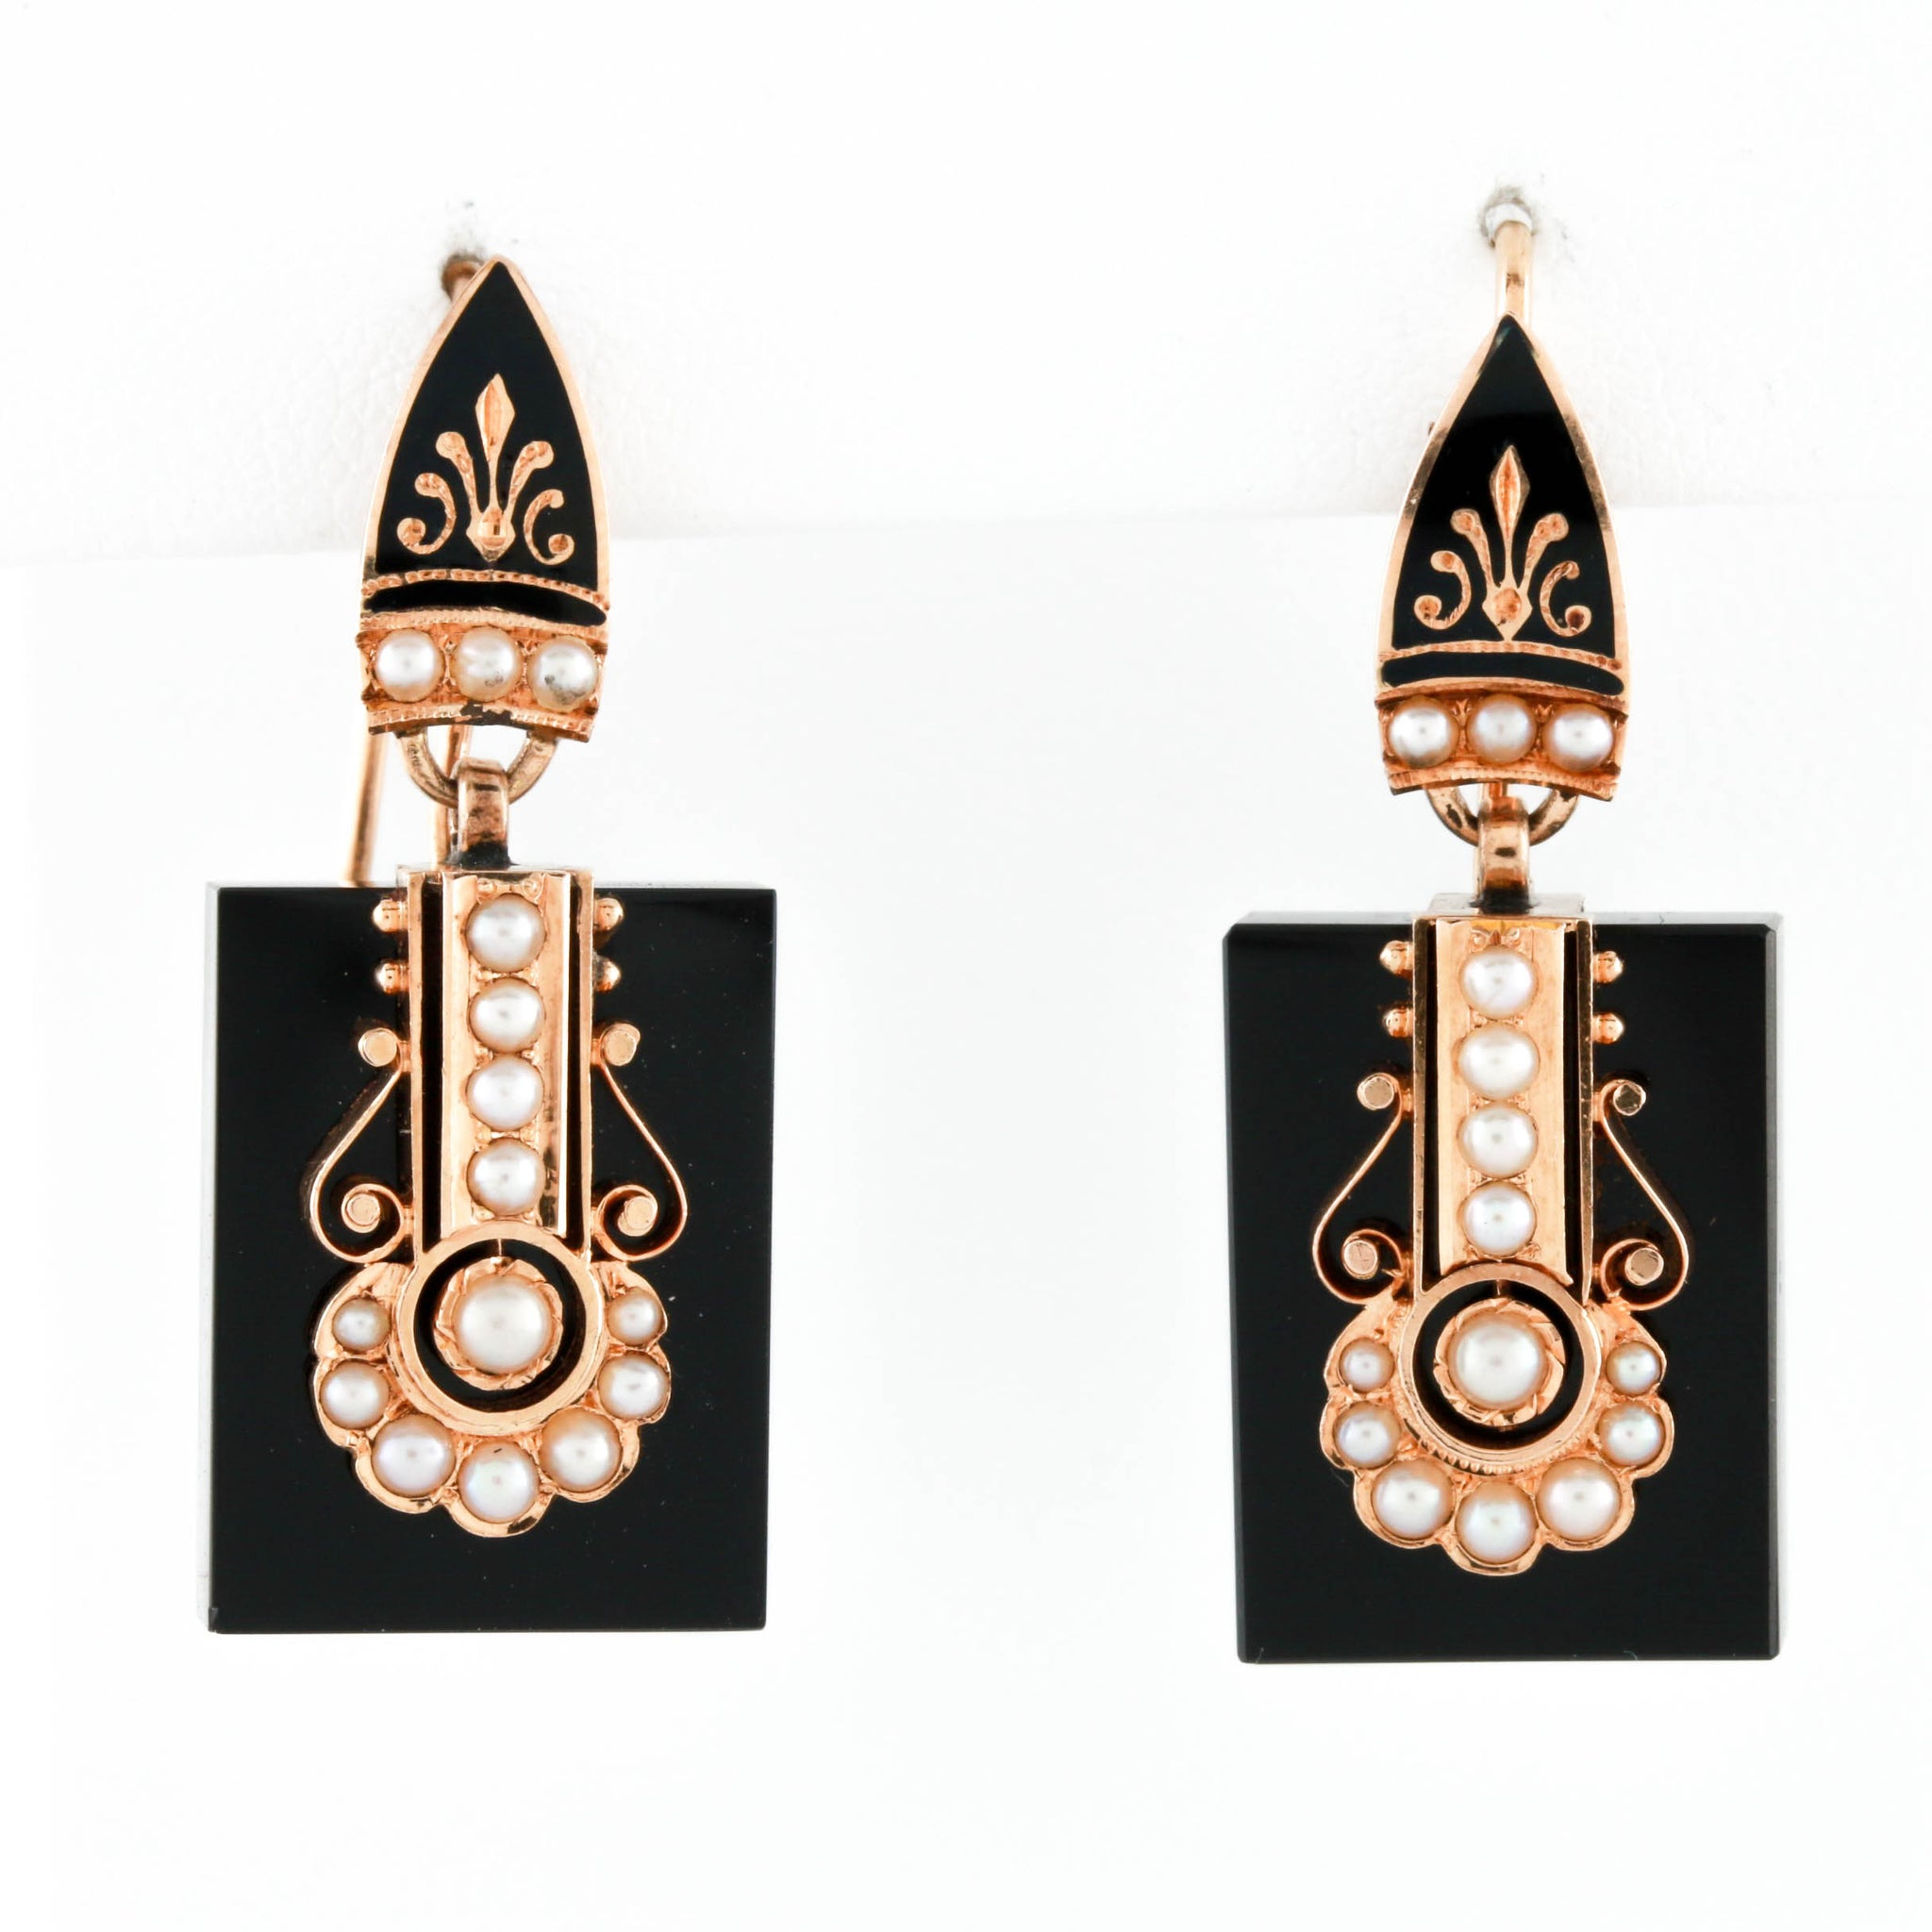 Victorian Yellow Gold Mounted Onyx Earrings with Seed Pearls - Sindur